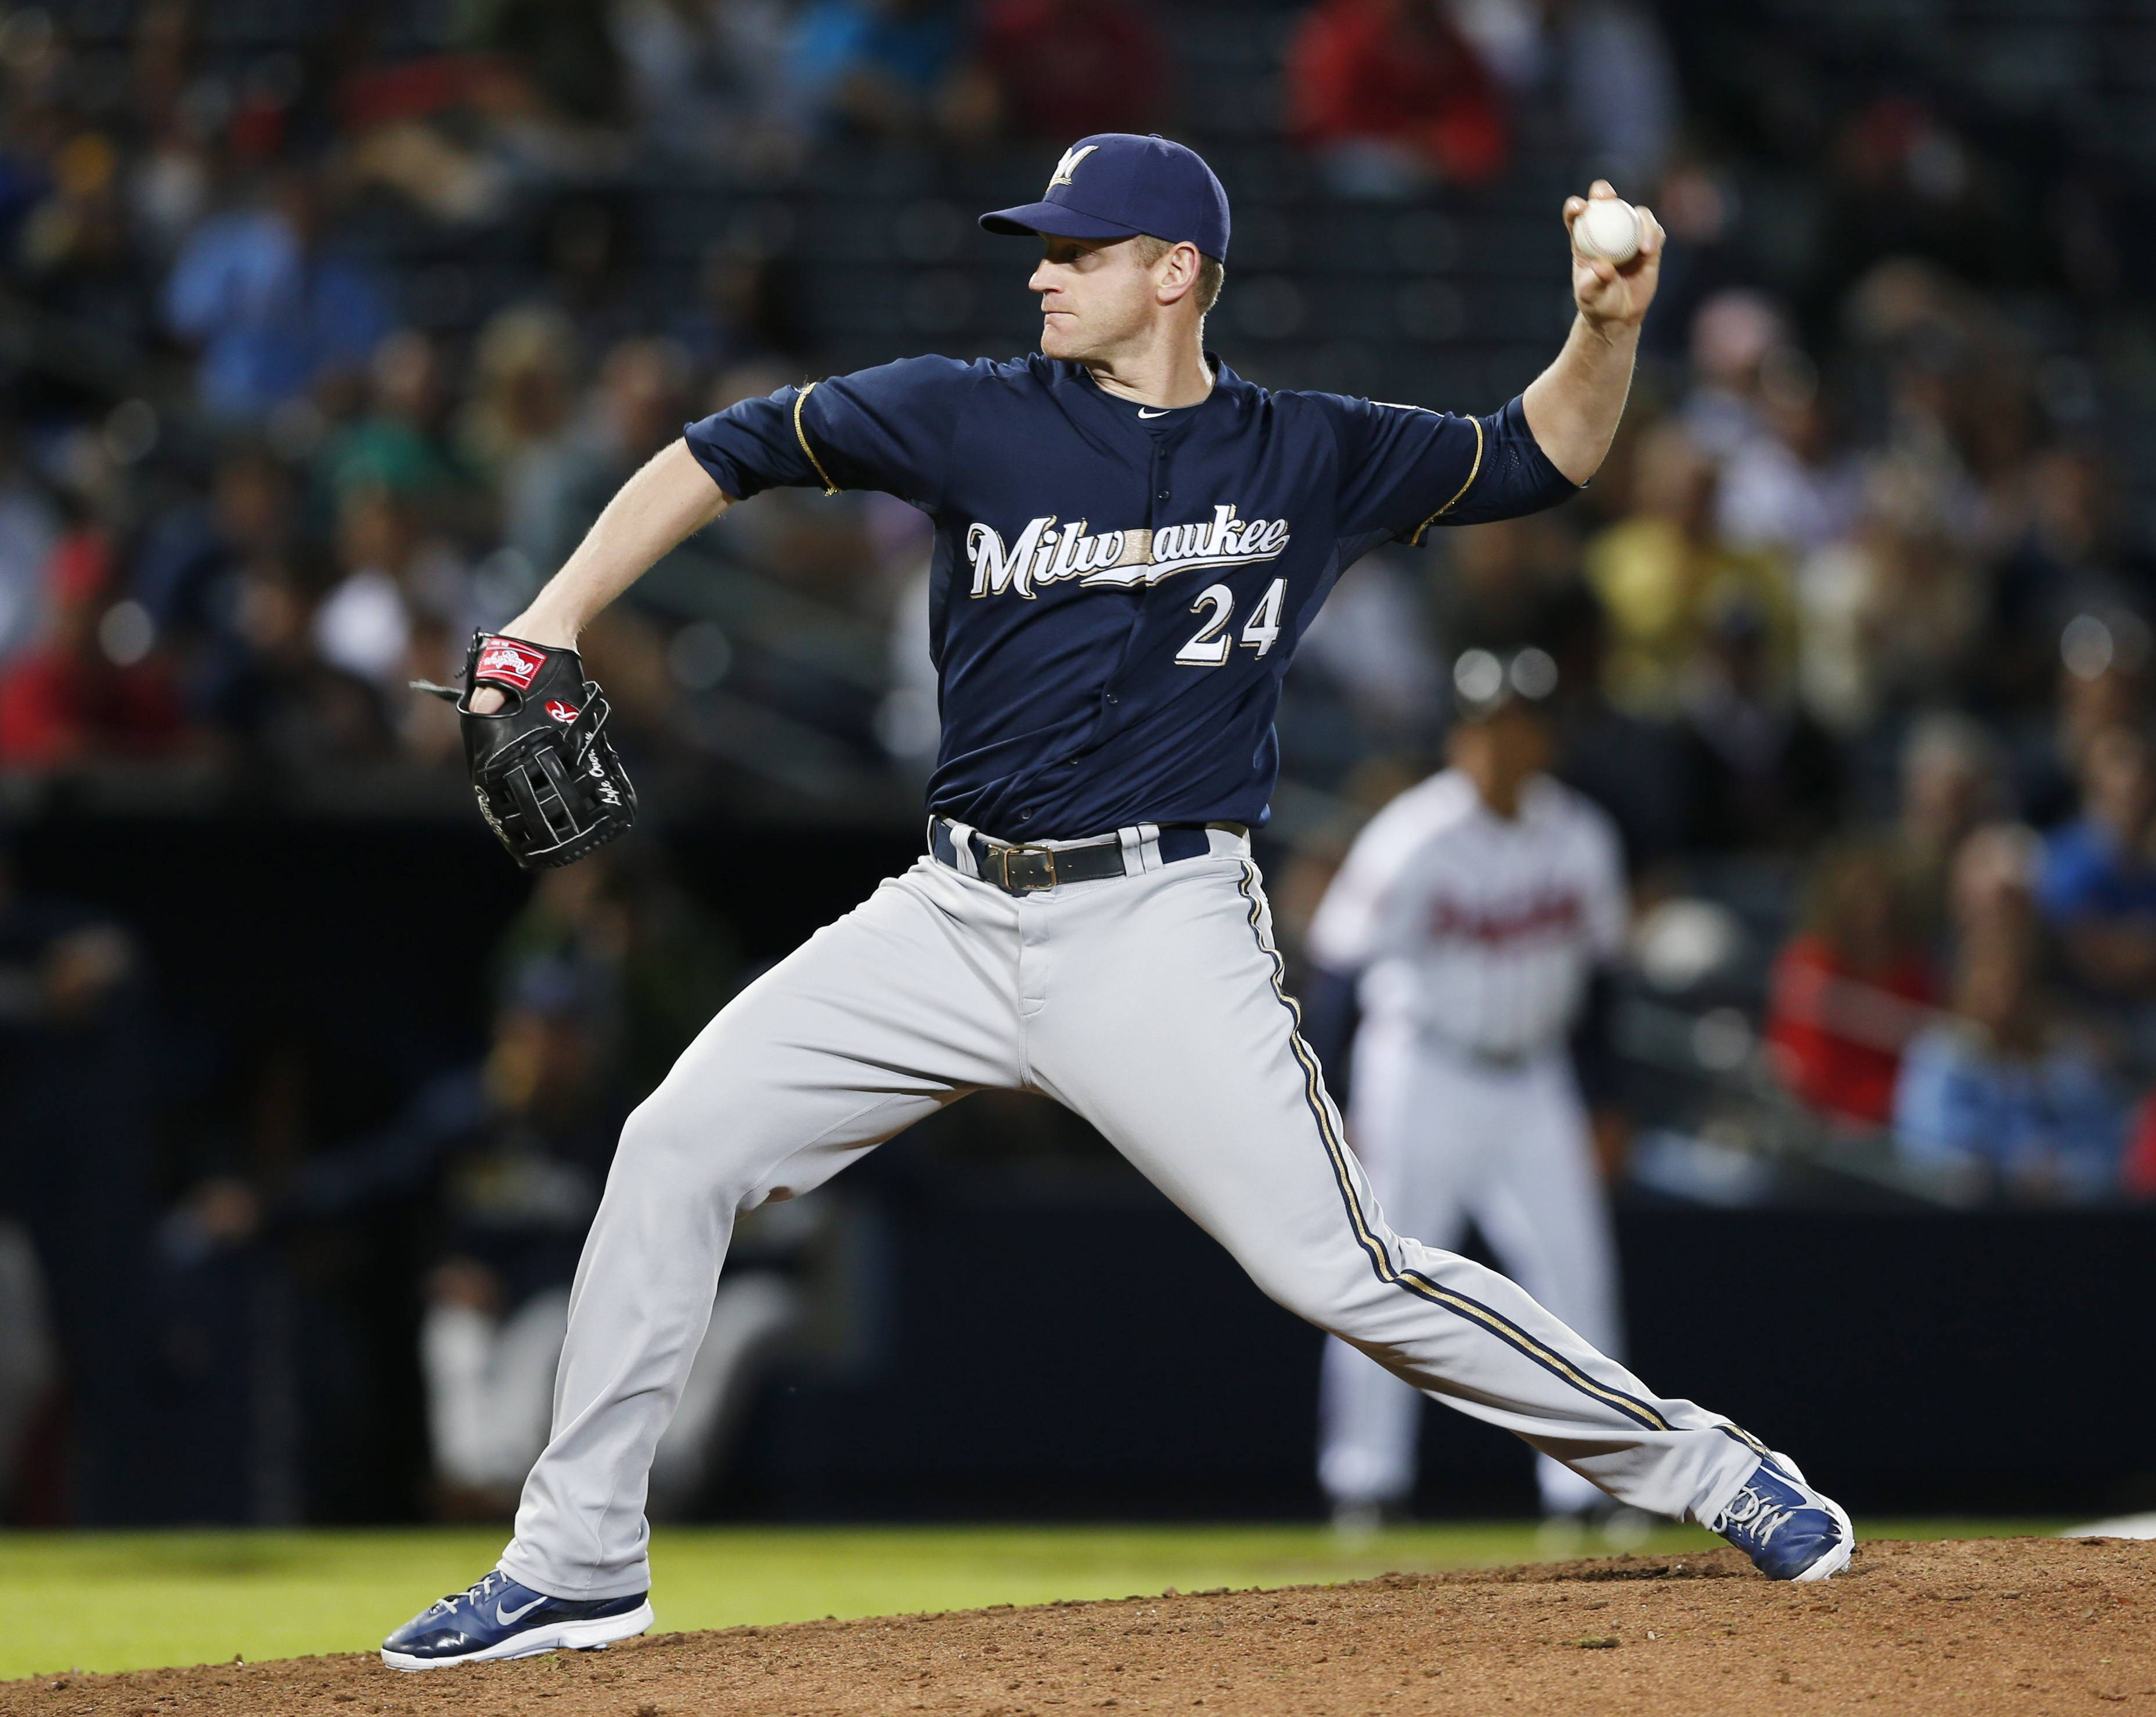 Milwaukee Brewers' Lyle Overbay pitches in the eighth inning of a baseball game Monday against Atlanta Braves in Atlanta. Atlanta won 9-3.